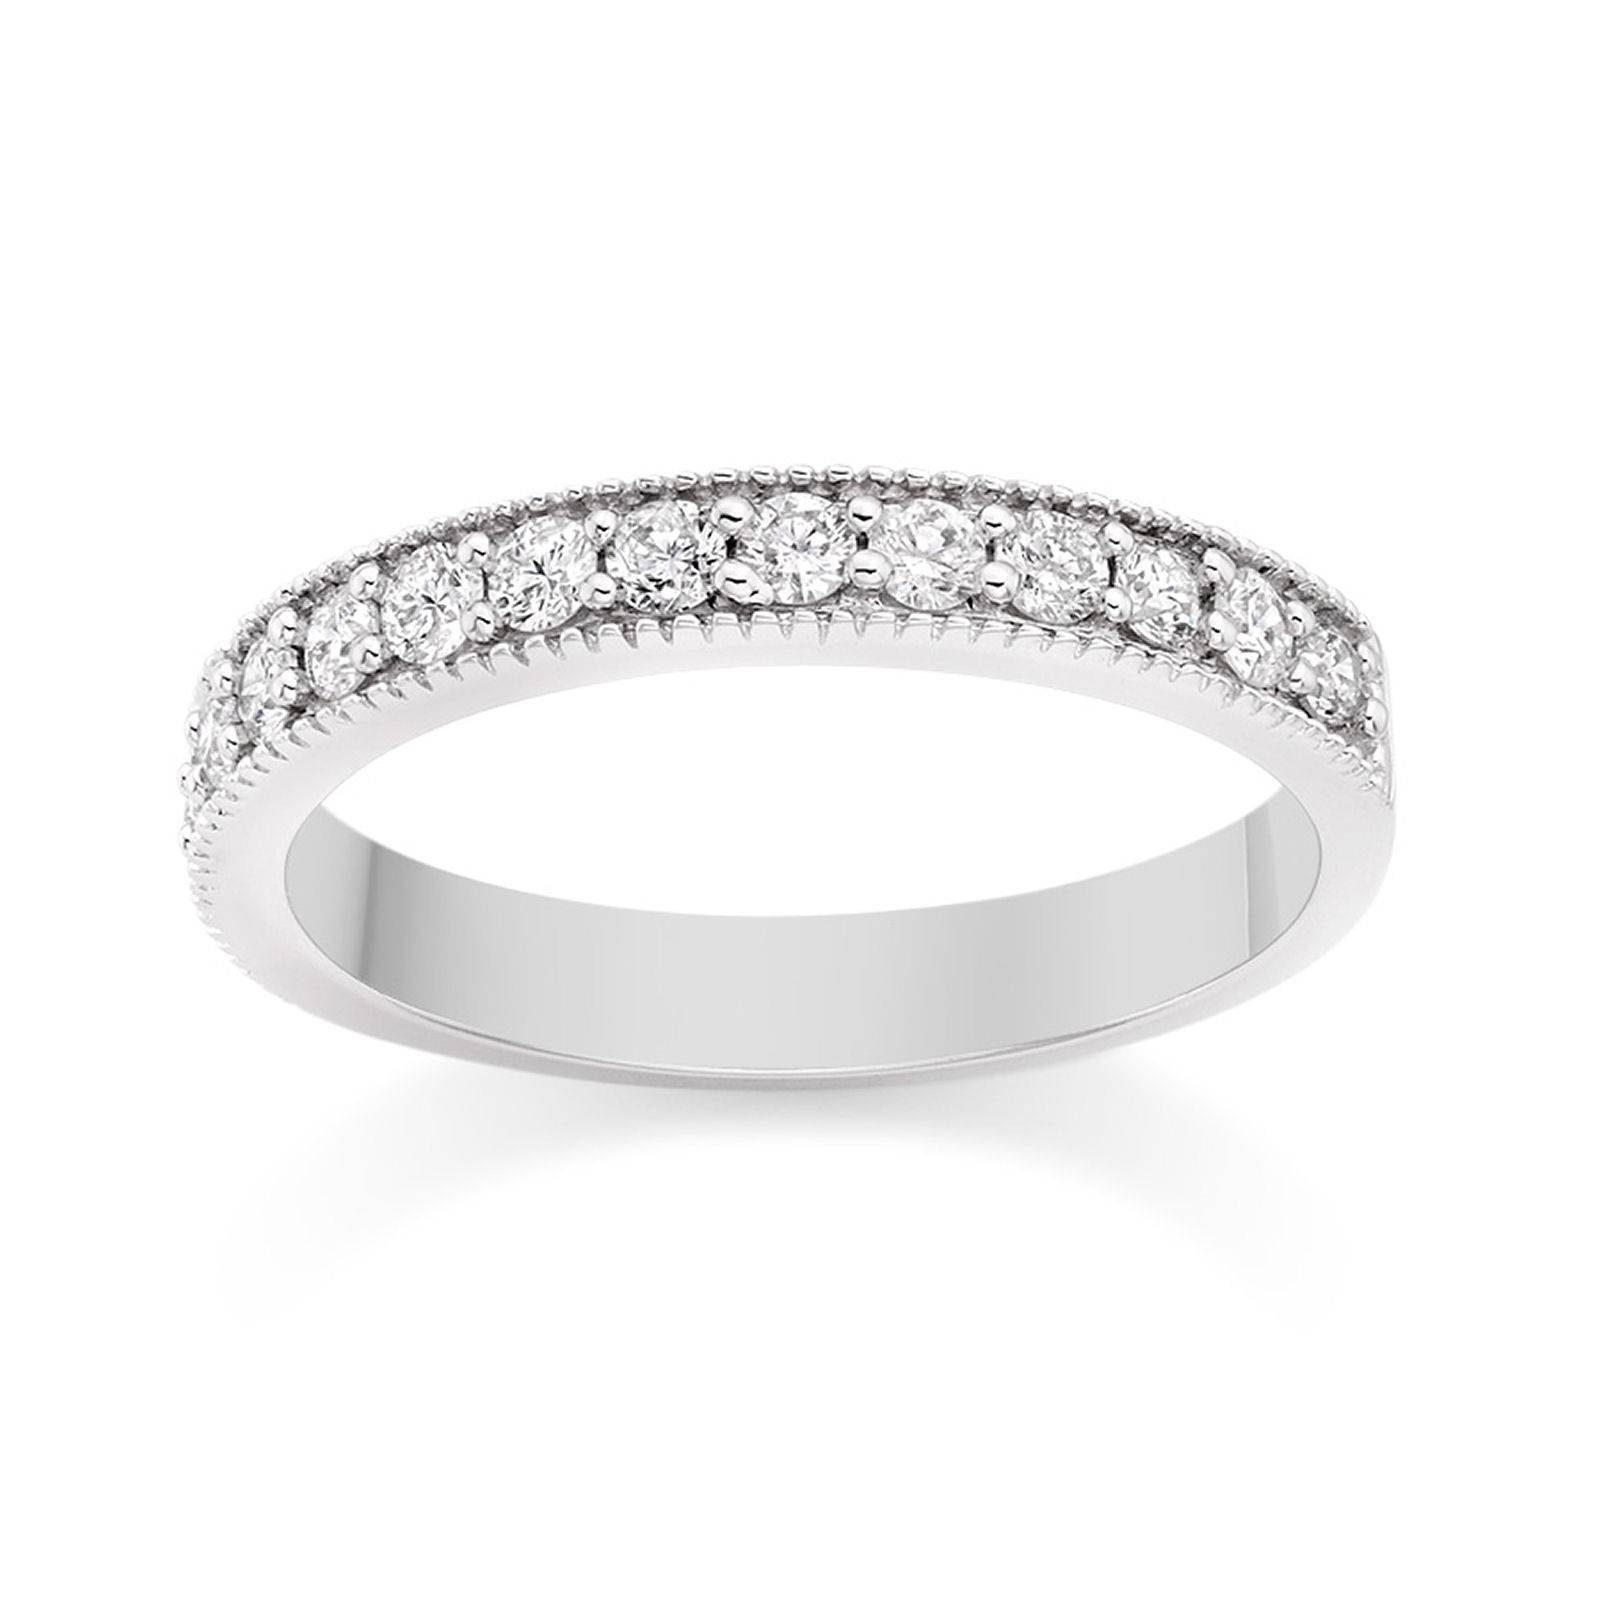 Milgrain Diamond Wedding Ring In Platinum Wedding Dress From Pertaining To Platinum And Diamond Wedding Rings (View 6 of 15)